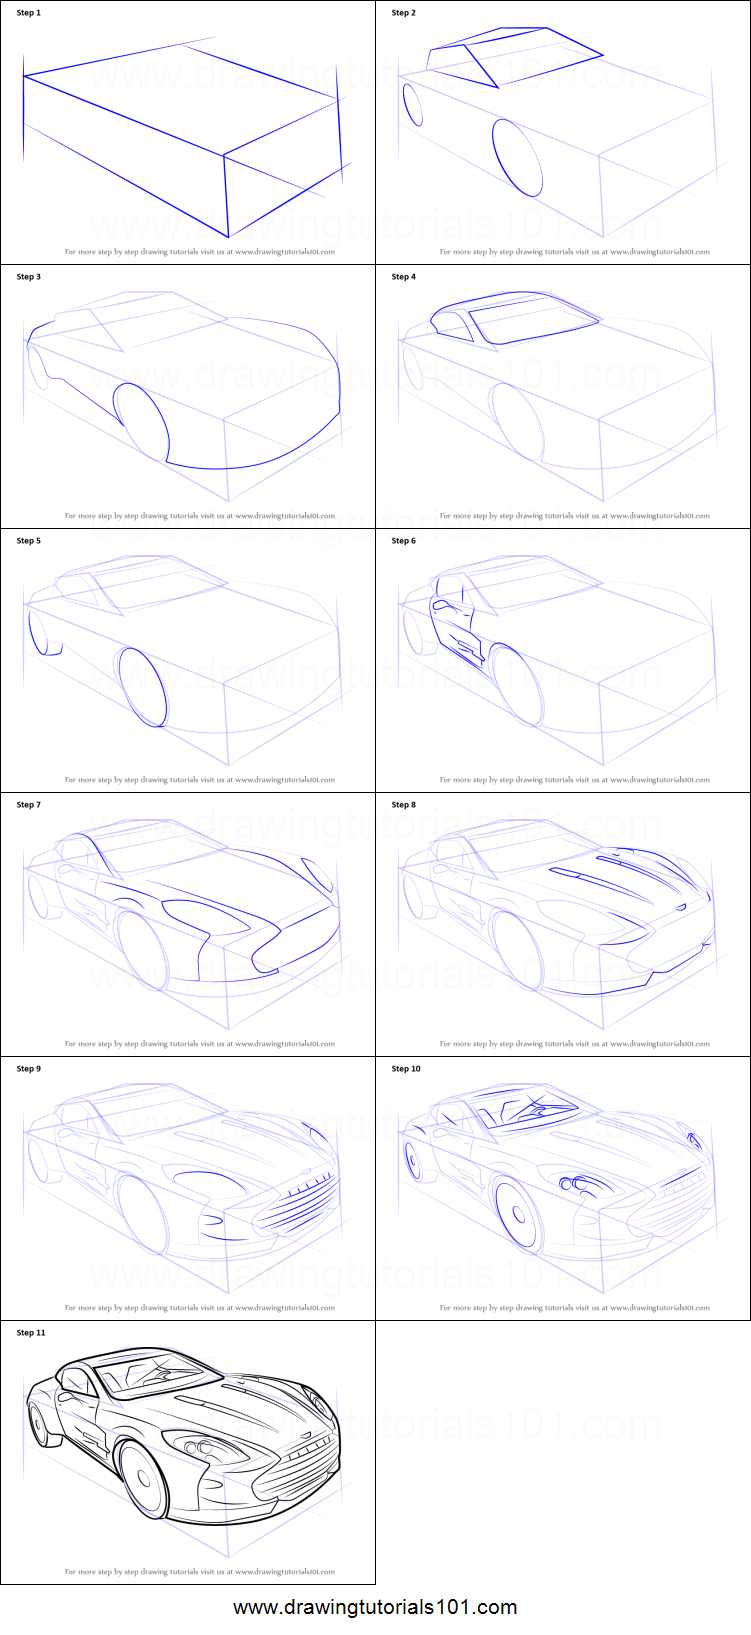 How To Draw Aston Martin One 77 Printable Step By Step Drawing Sheet Drawingtutorials101 Com